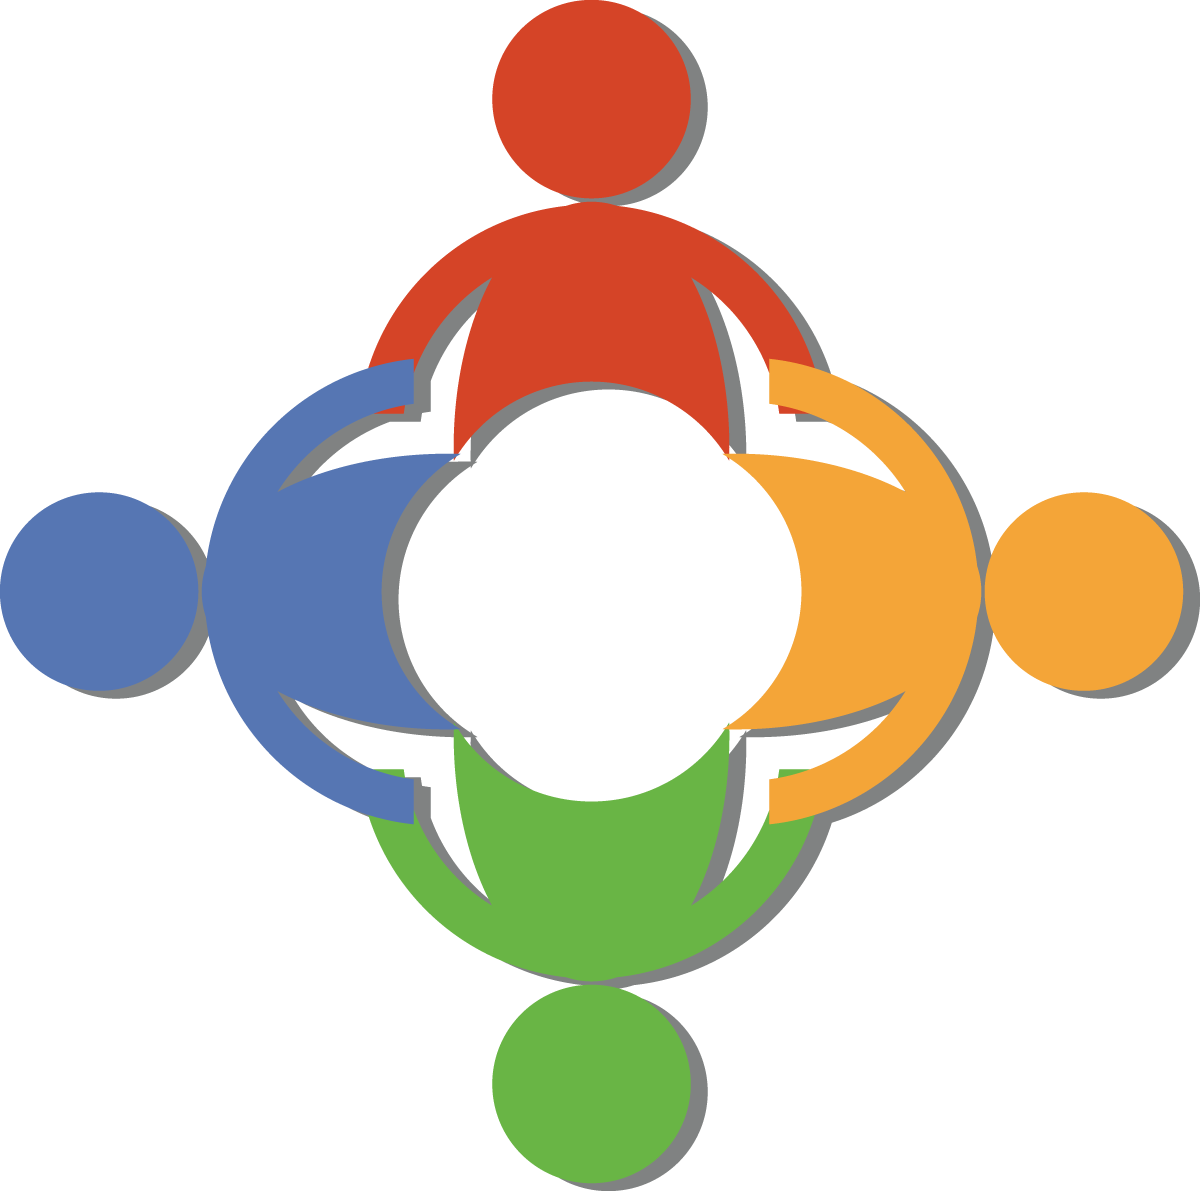 7-Free-Teamwork-Clip-Art-Of-A-Circle-Of-Diverse-People-Holding-Hands.png